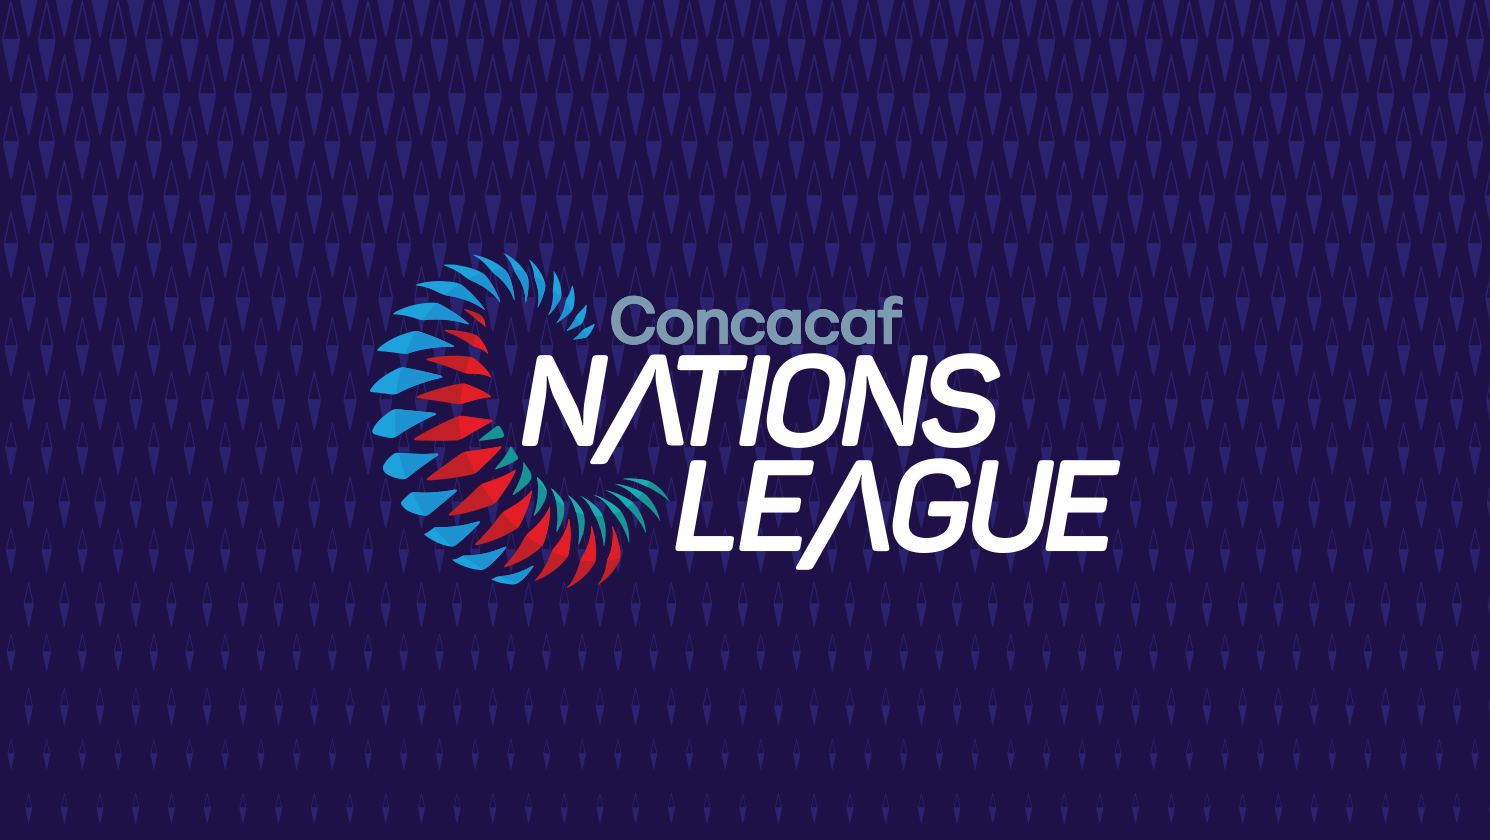 Schedule Confirmed for the Inaugural Round of Concacaf Nations League Group Stage Matches